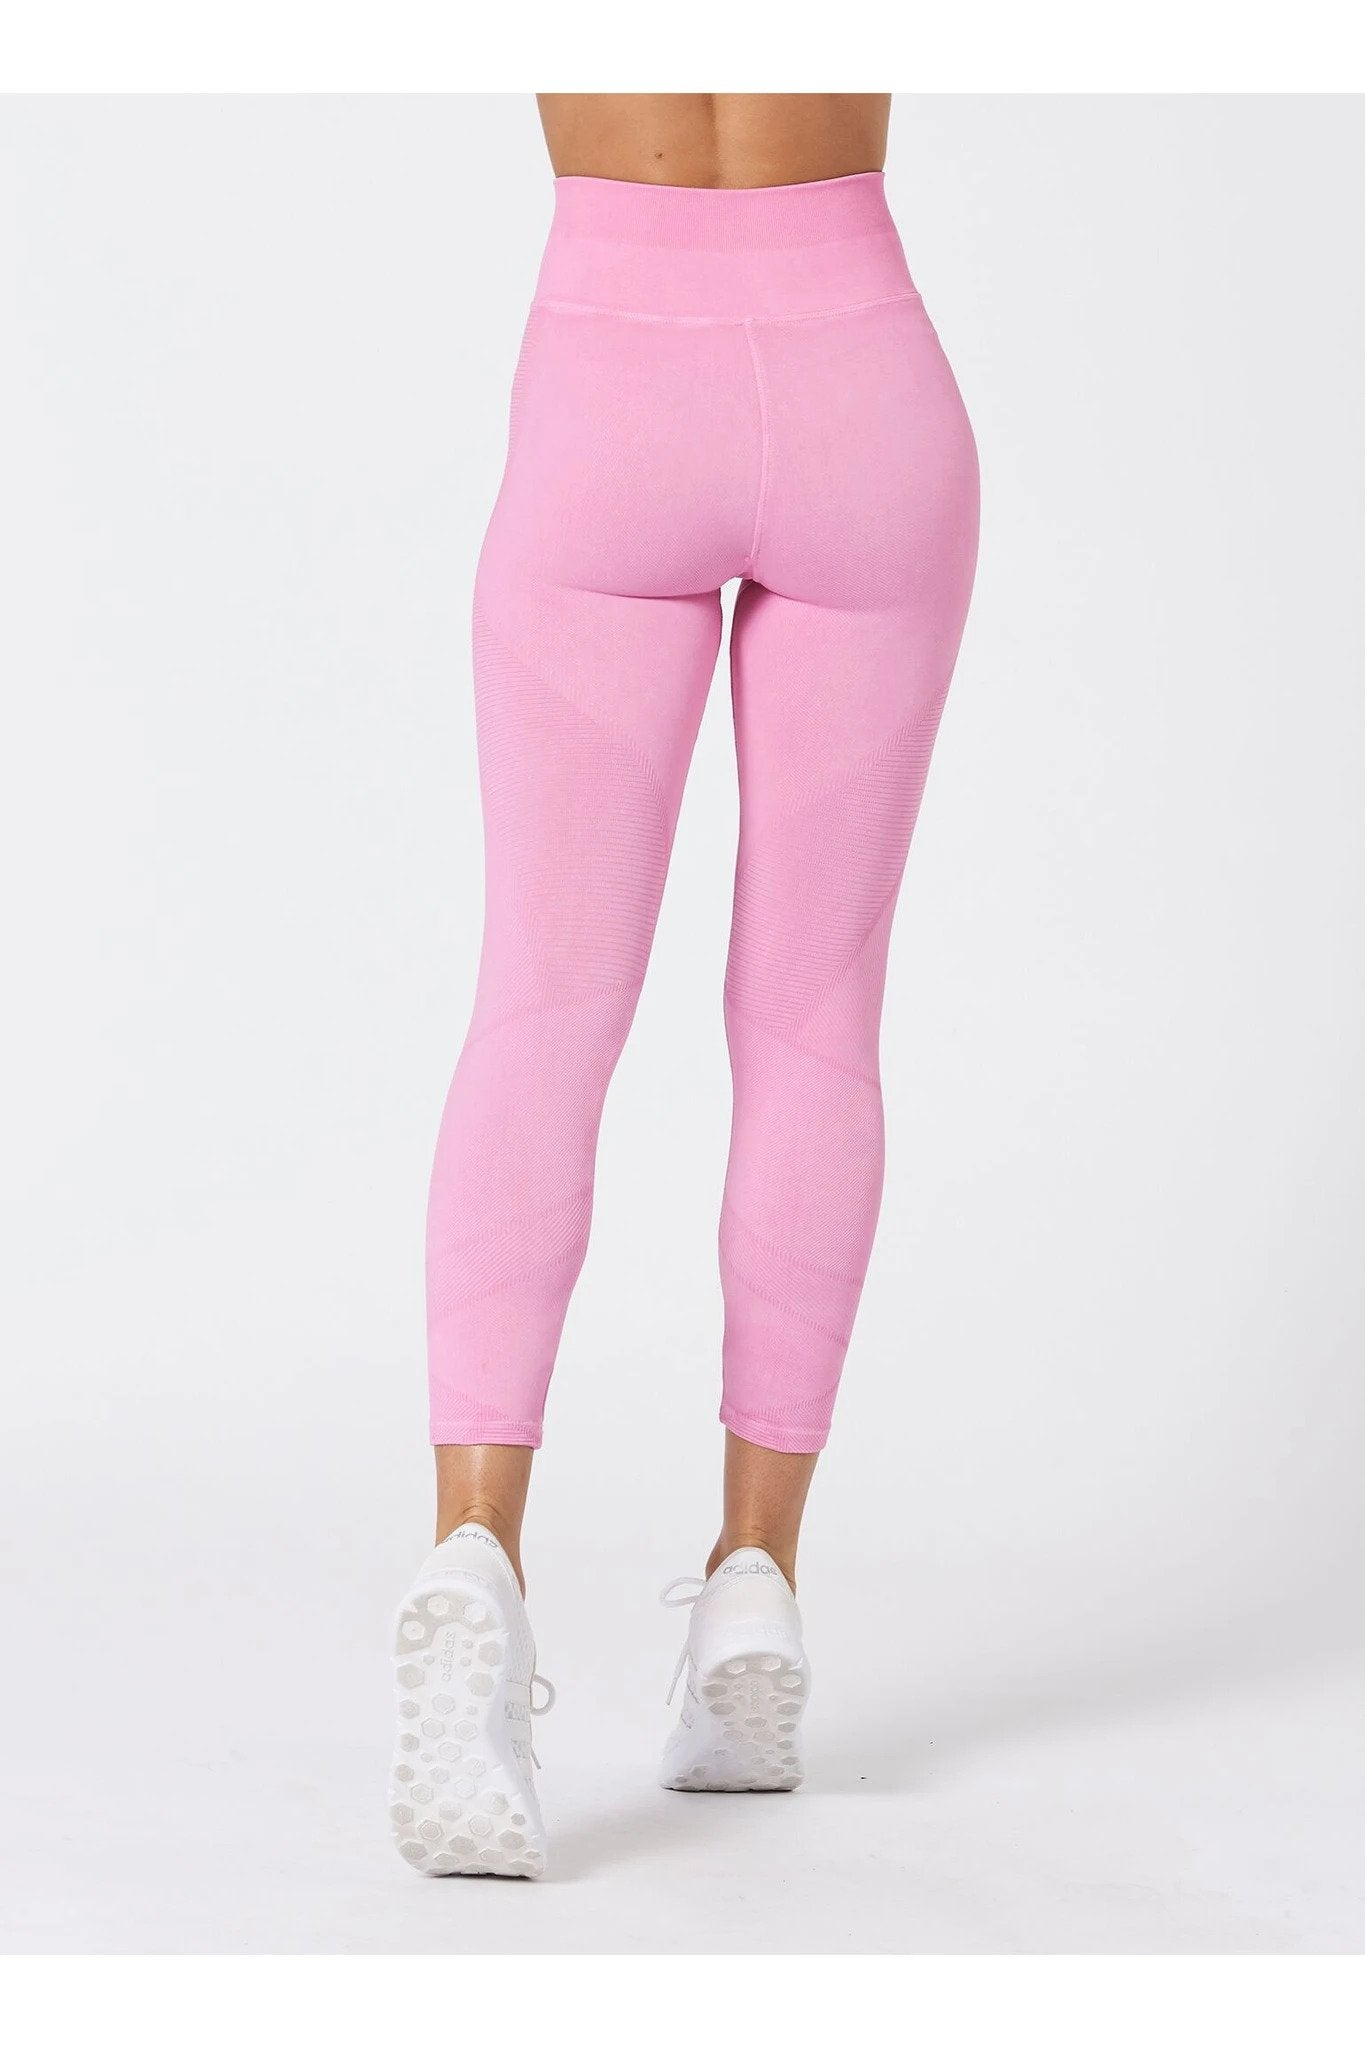 Shapeshifter 7/8 Legging MW - Knockout Pink